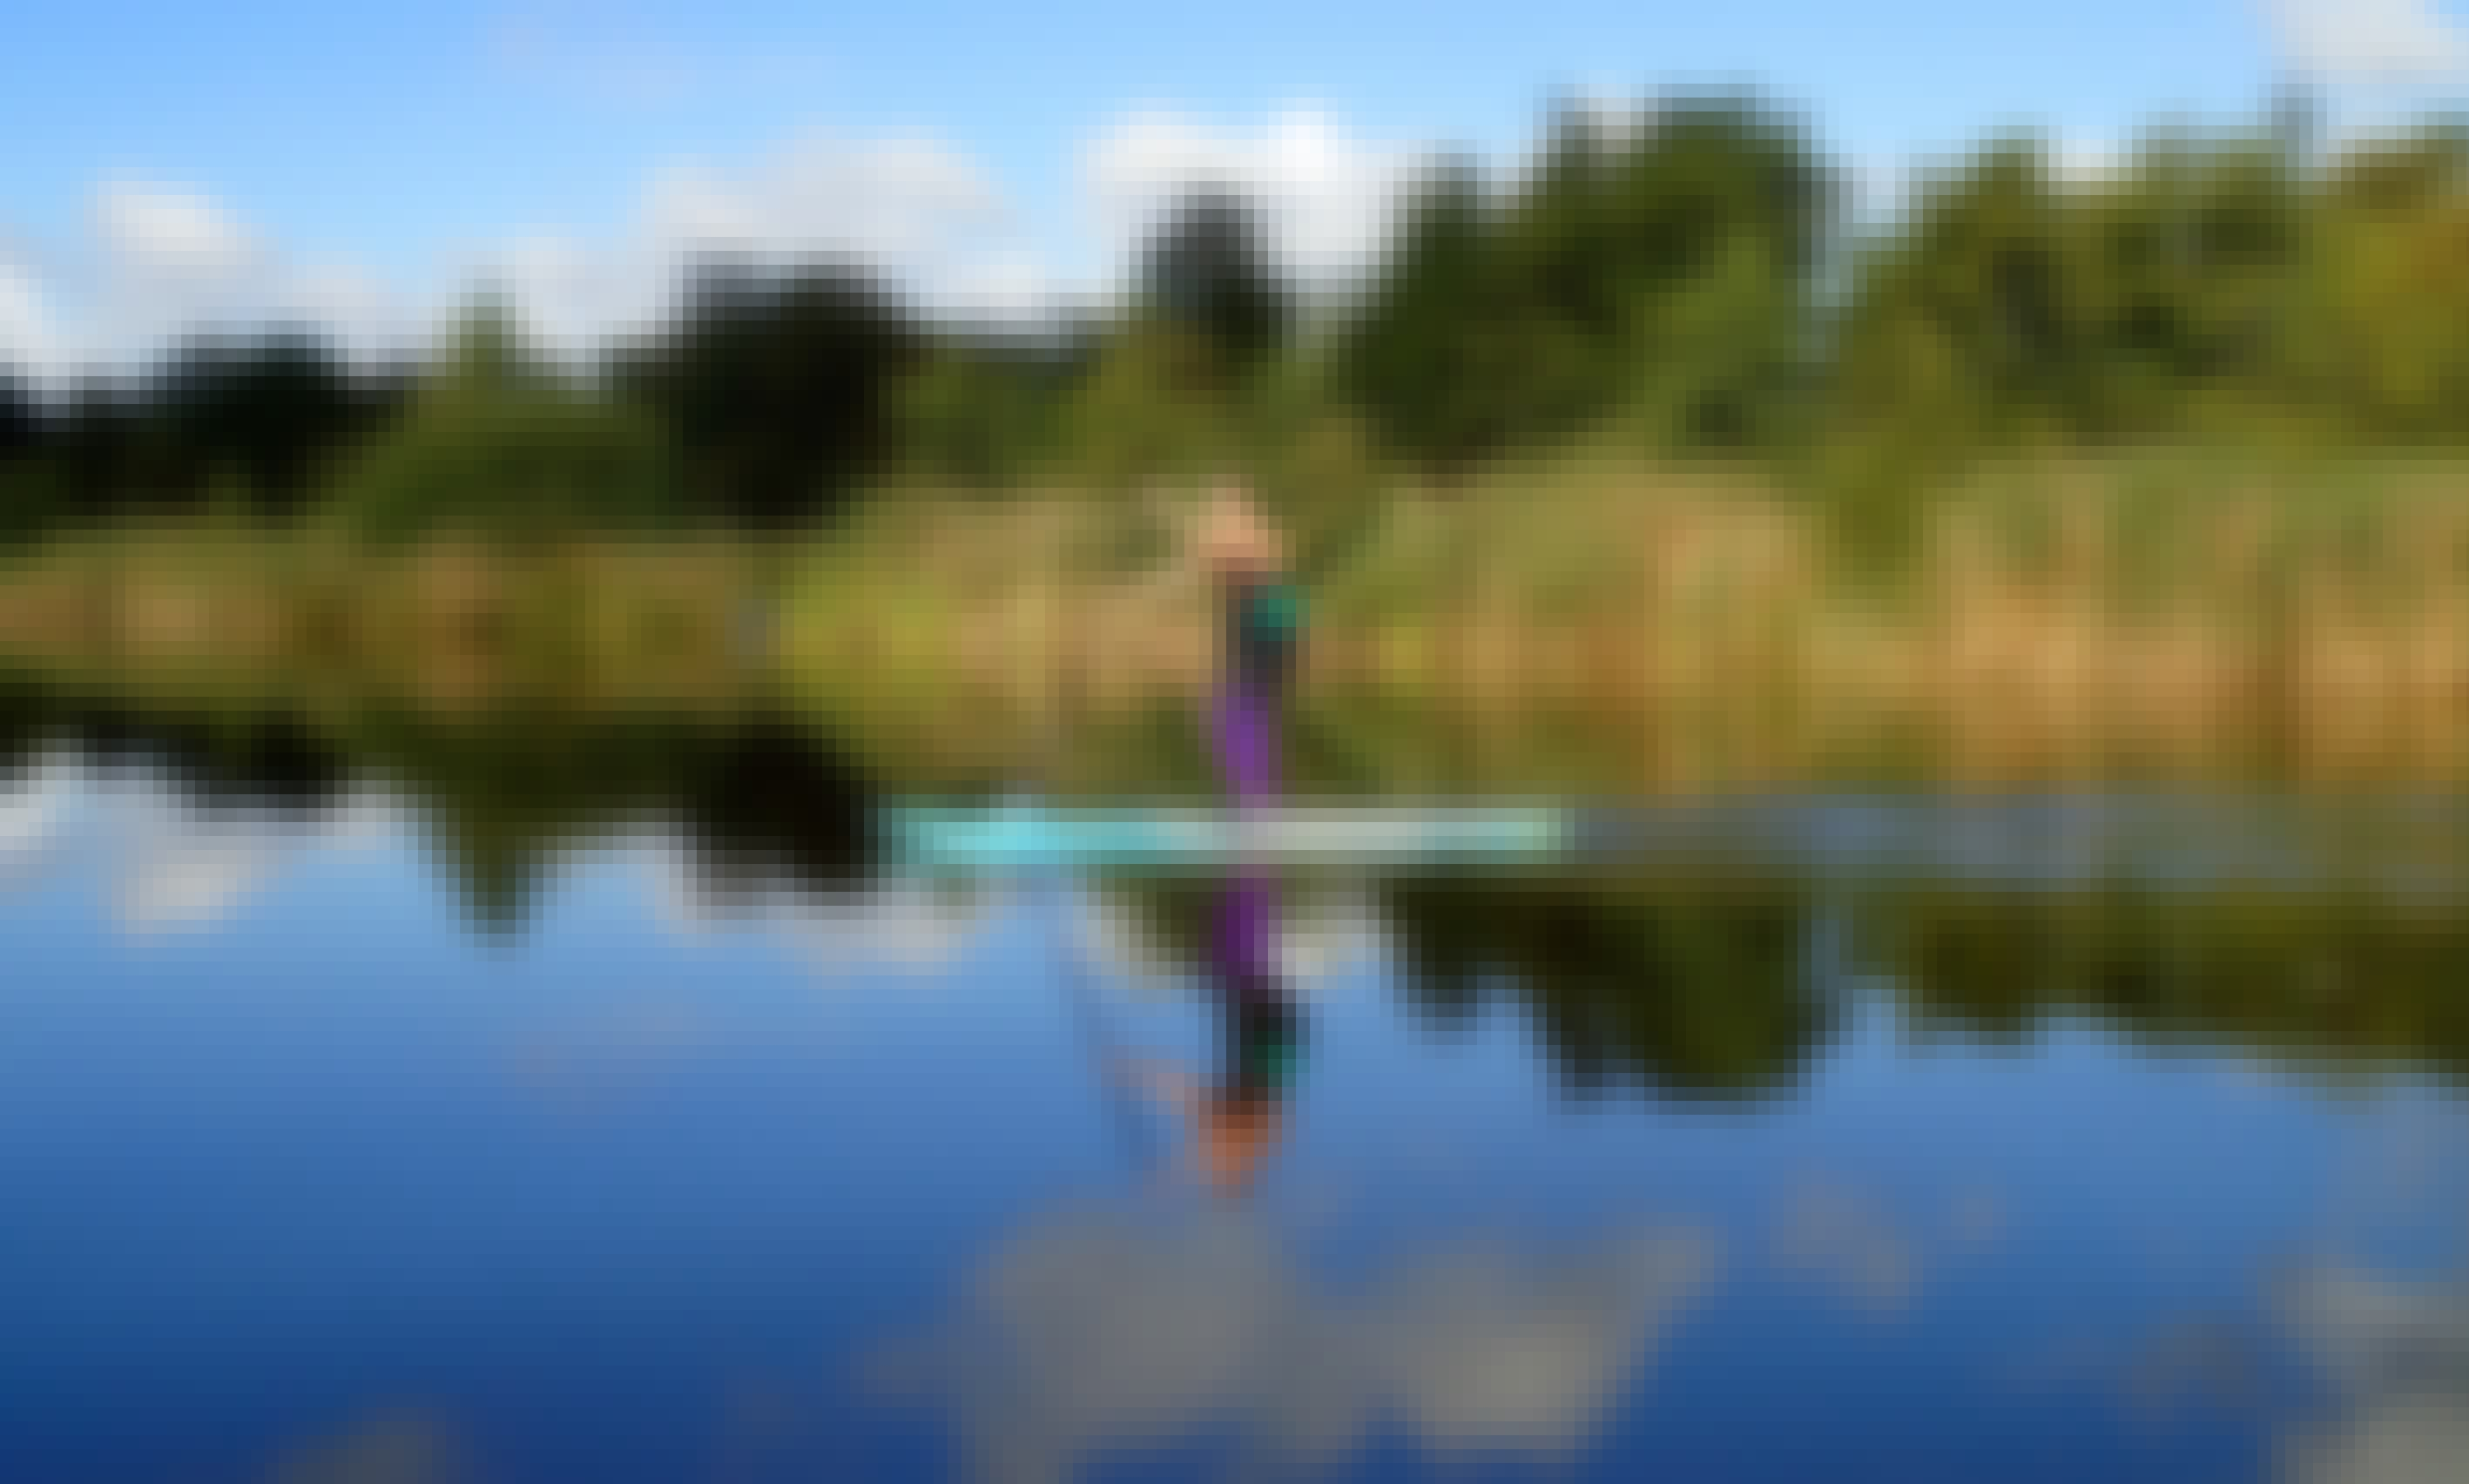 SUP Rental, Lessons, Yoga, Pilates & Dogs-SUP in Loosdrecht